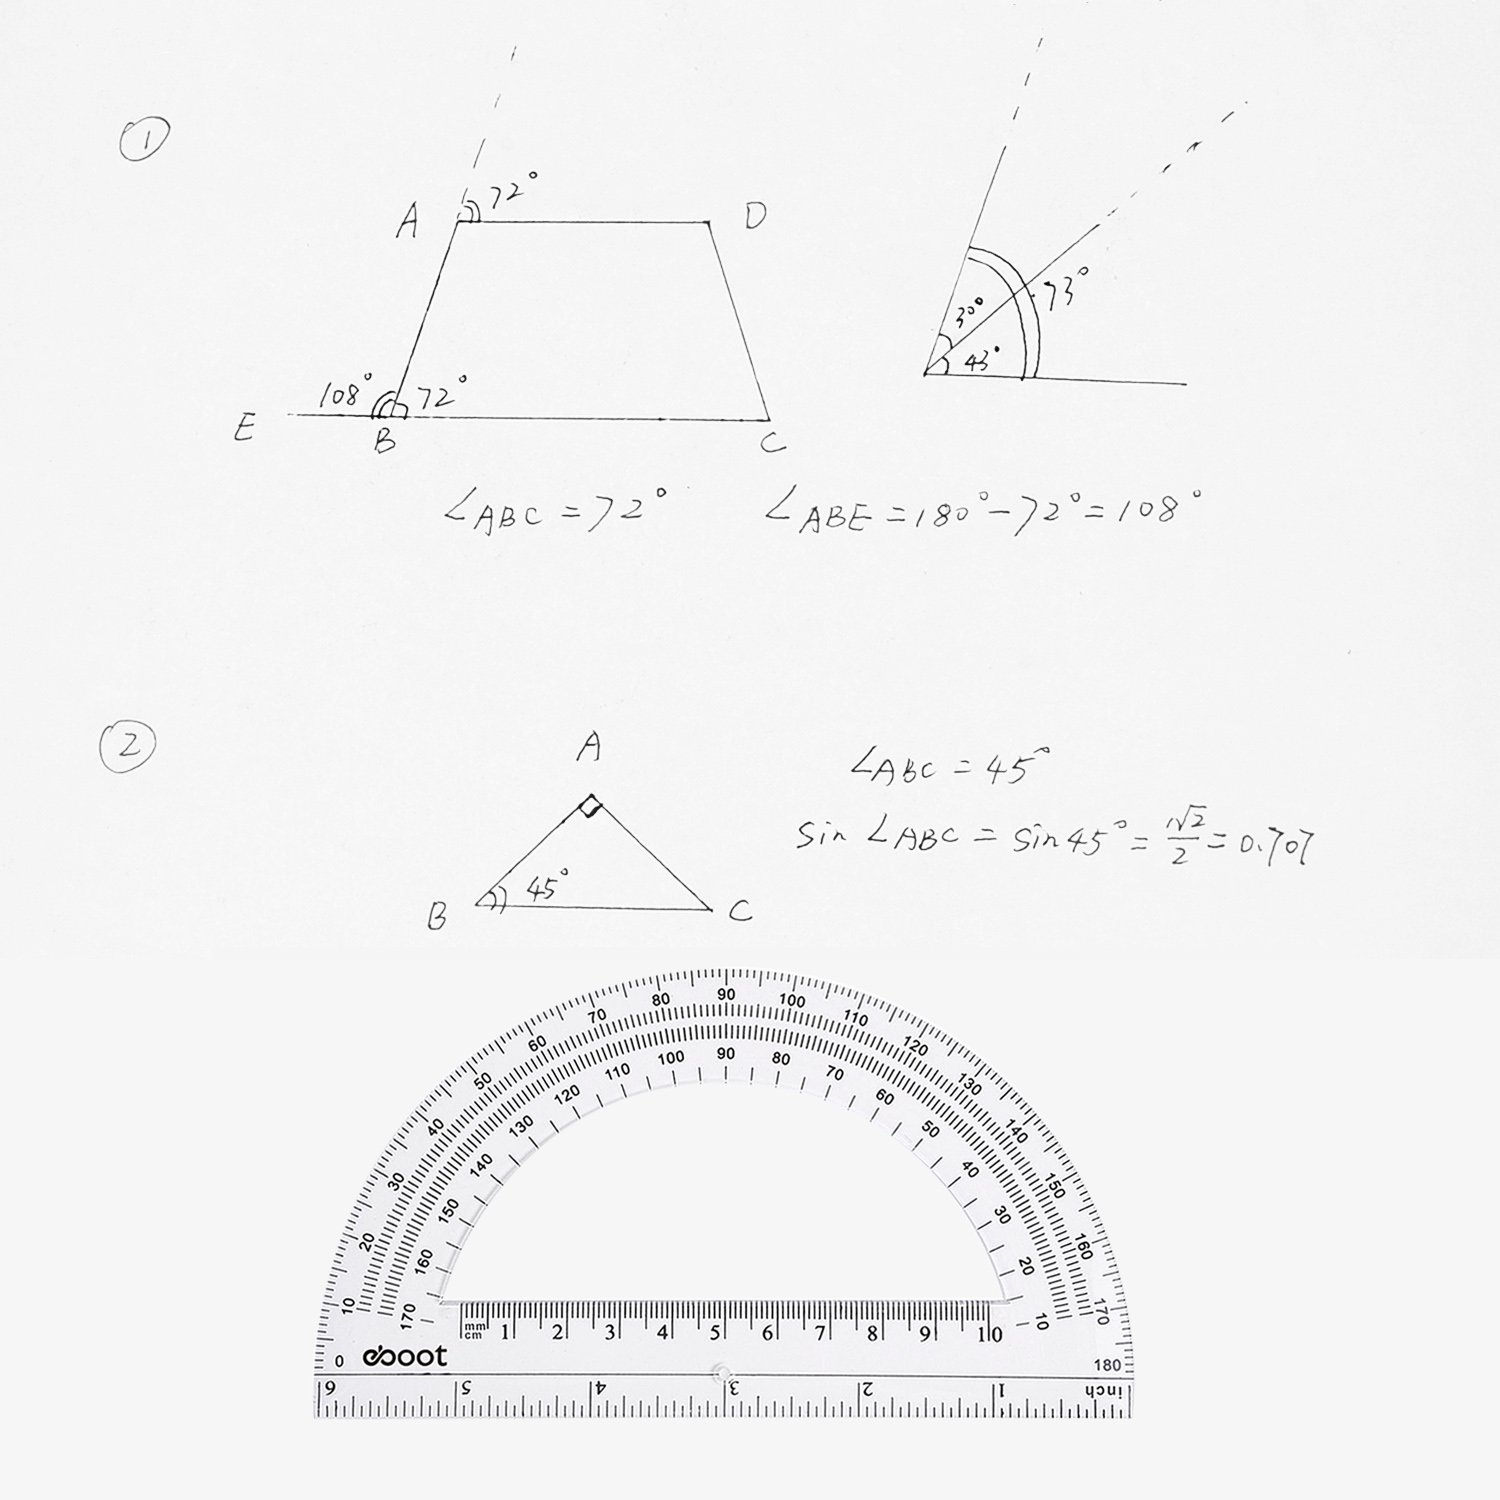 eBoot Plastic Protractor Math Protractors 180 Degrees, 6 Inches, Clear, Pack of 2 by eBoot (Image #6)